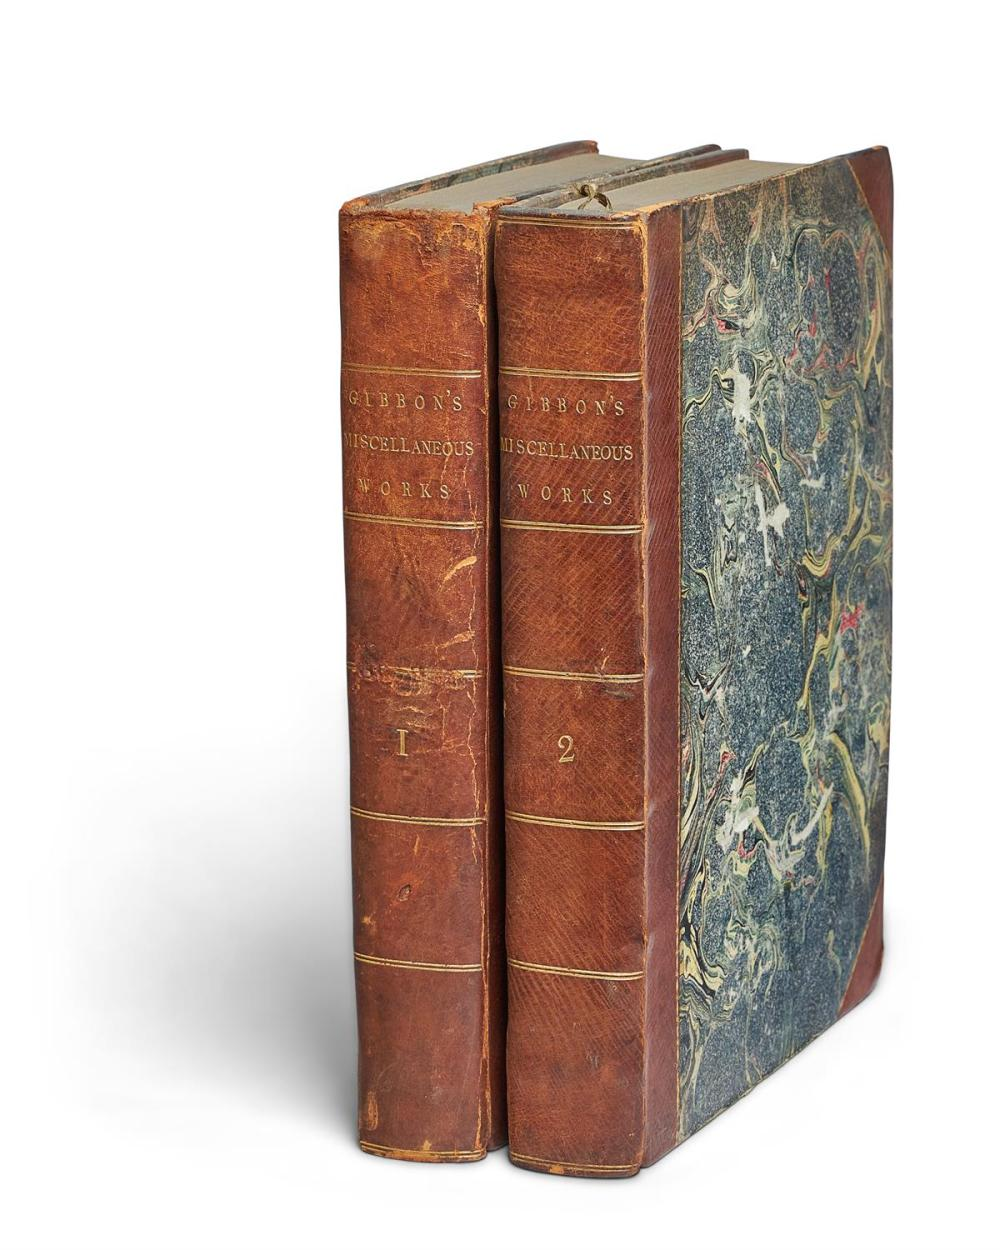 Ɵ GIBBON, E. MISCELLANEOUS WORKS, WITH MEMOIRS OF HIS LIFE AND WRITINGS. 2 VOLS., 1796